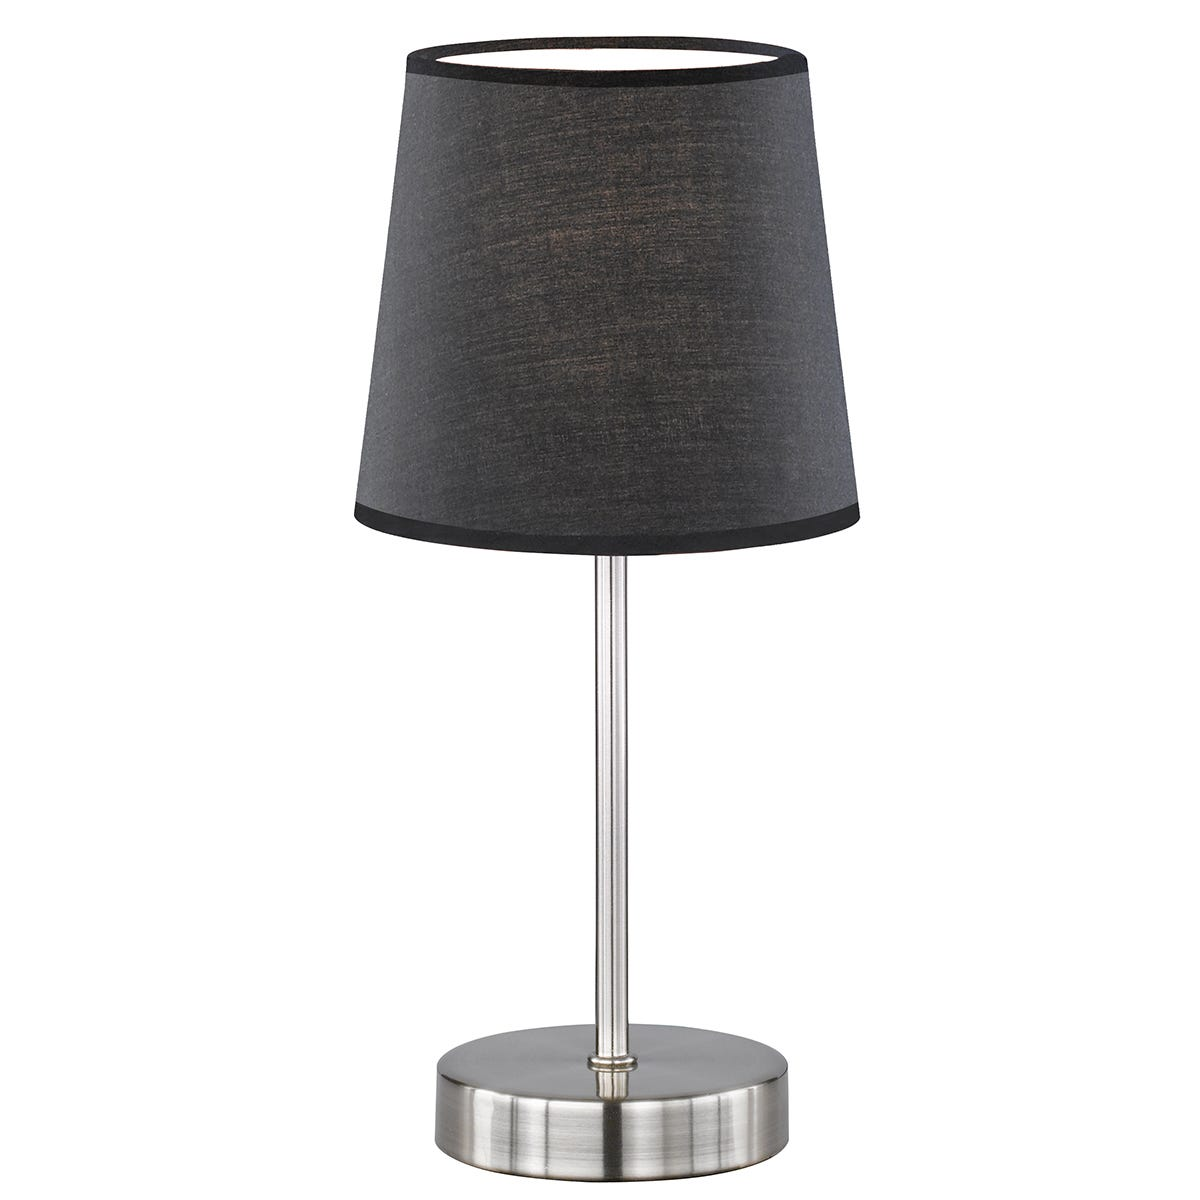 Action Cesena Table Lamp with Black Shade - Nickel Matt Finished